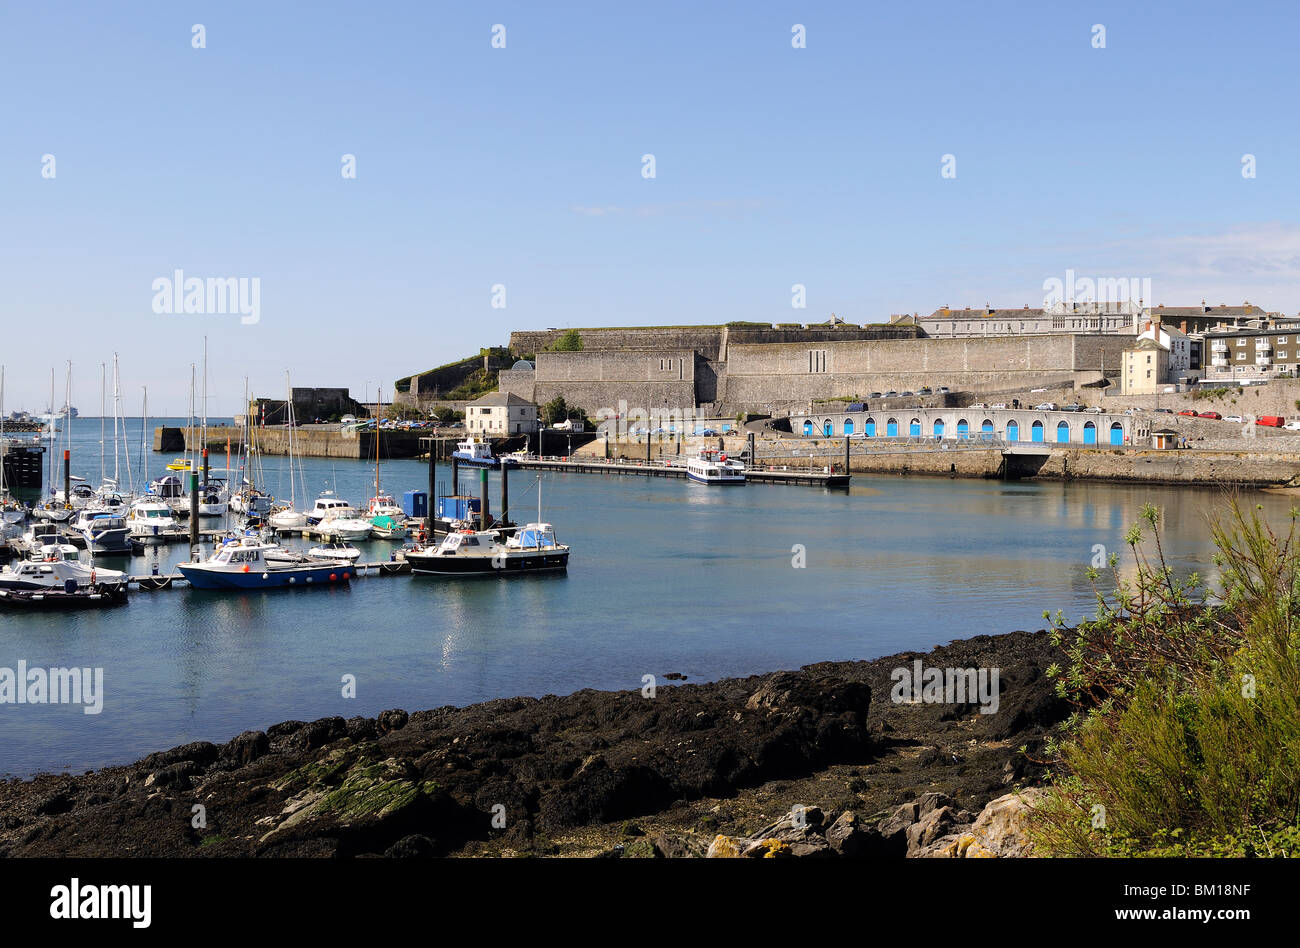 queen annes battery marina at plymouth, devon, uk - Stock Image